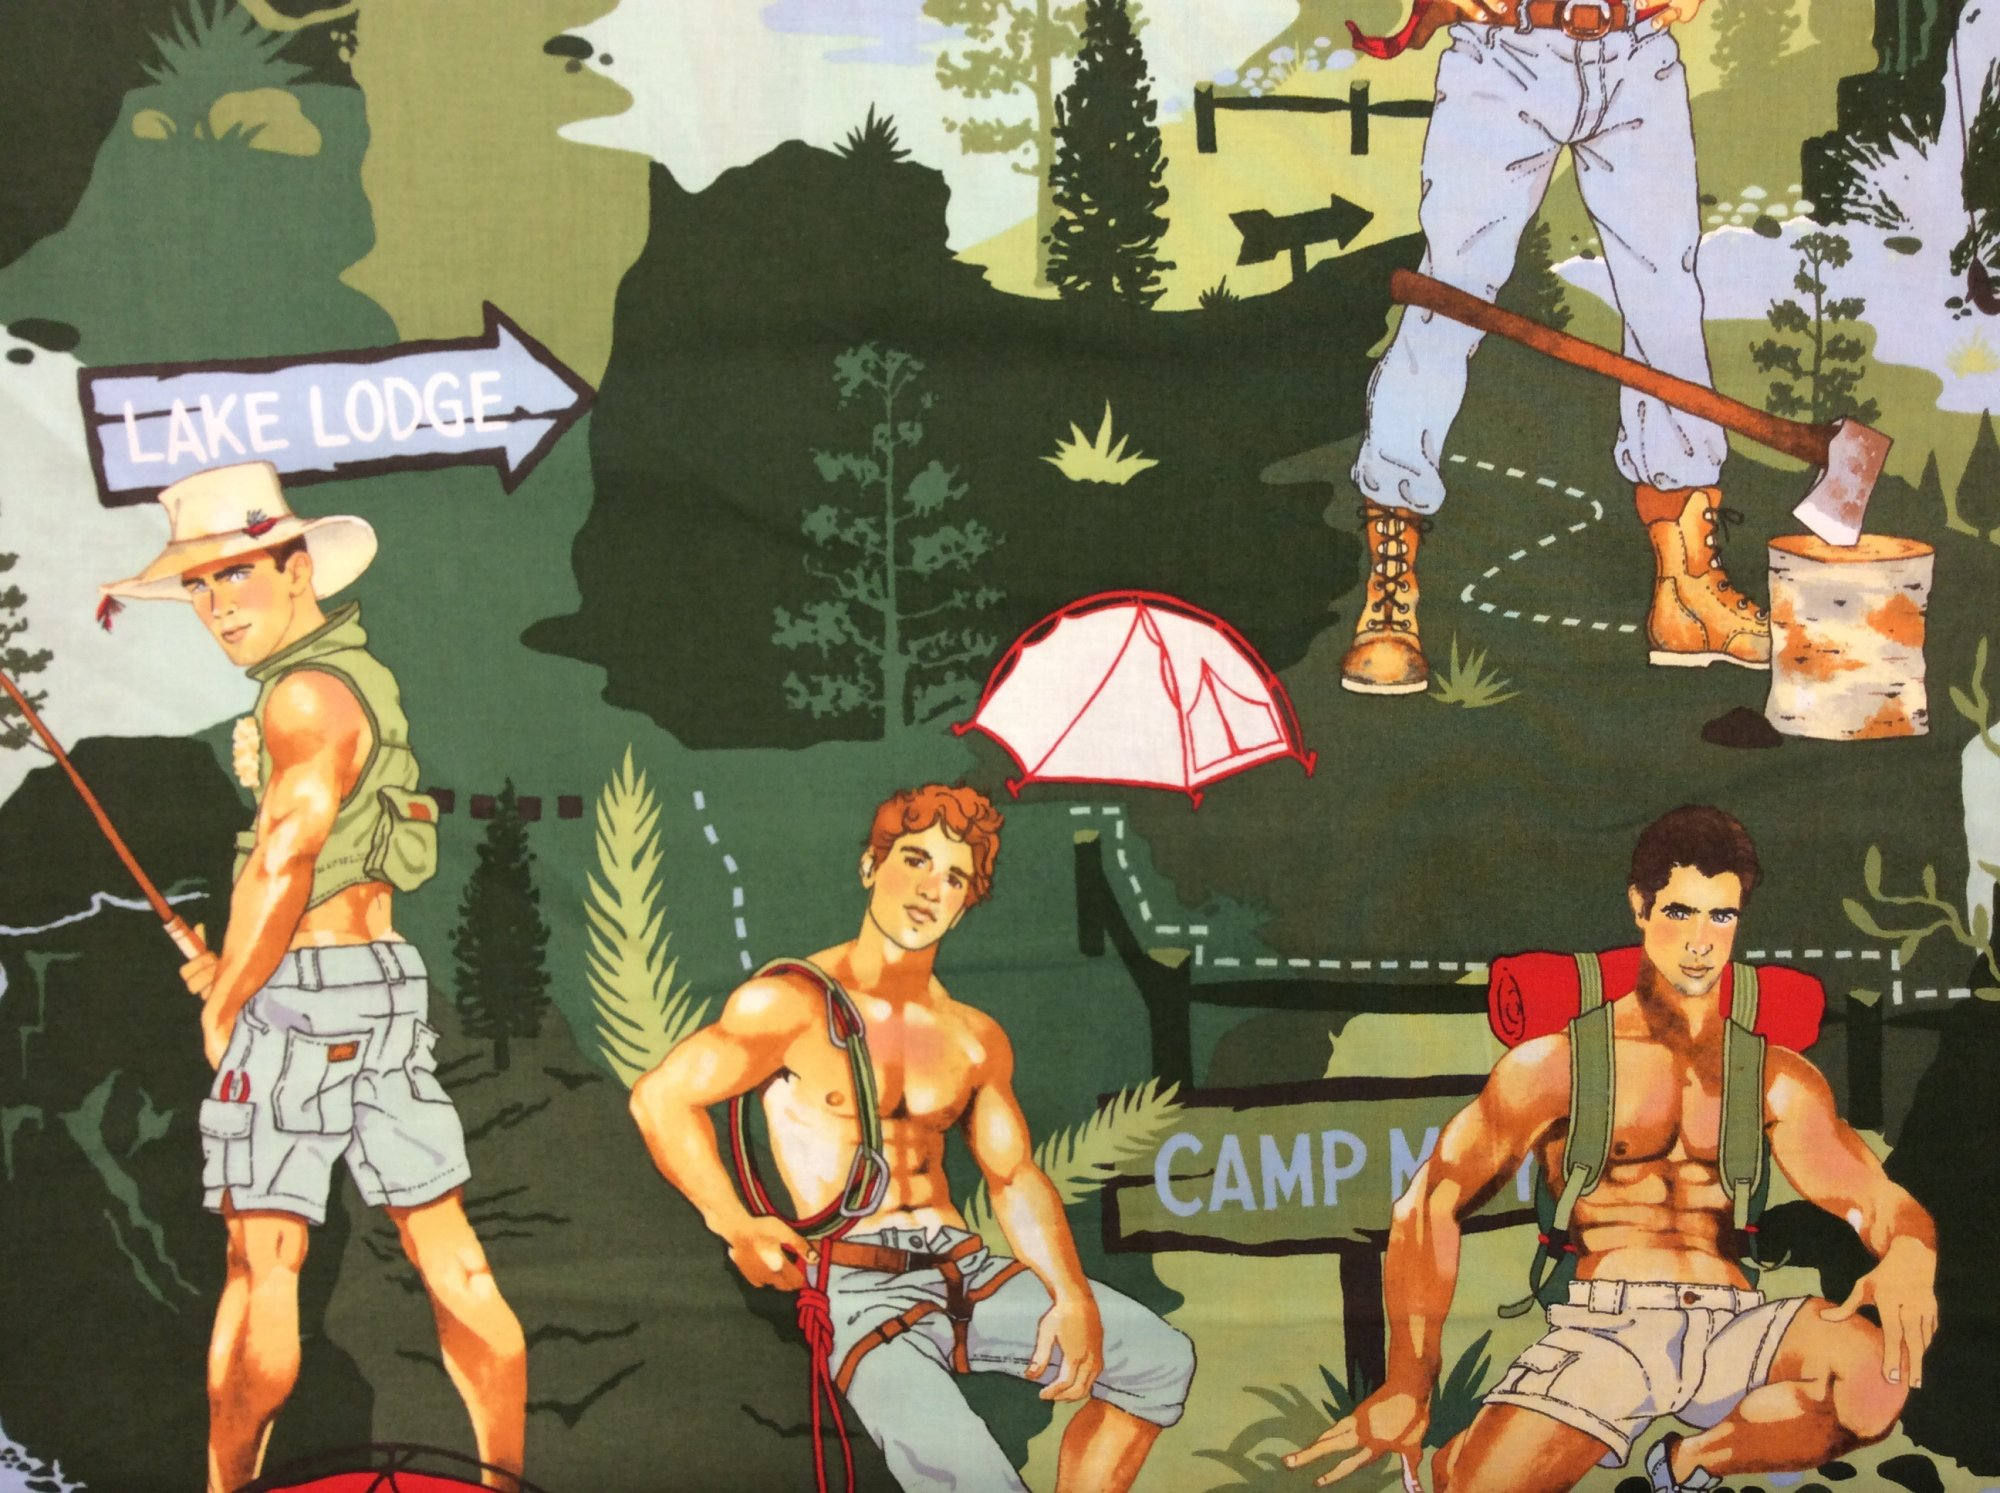 Sexy Pin Up Guy Outdoor Camper Lumberjack Back Woods Fisherman Guys Cotton Fabric Quilting Fabric CR292 AH116